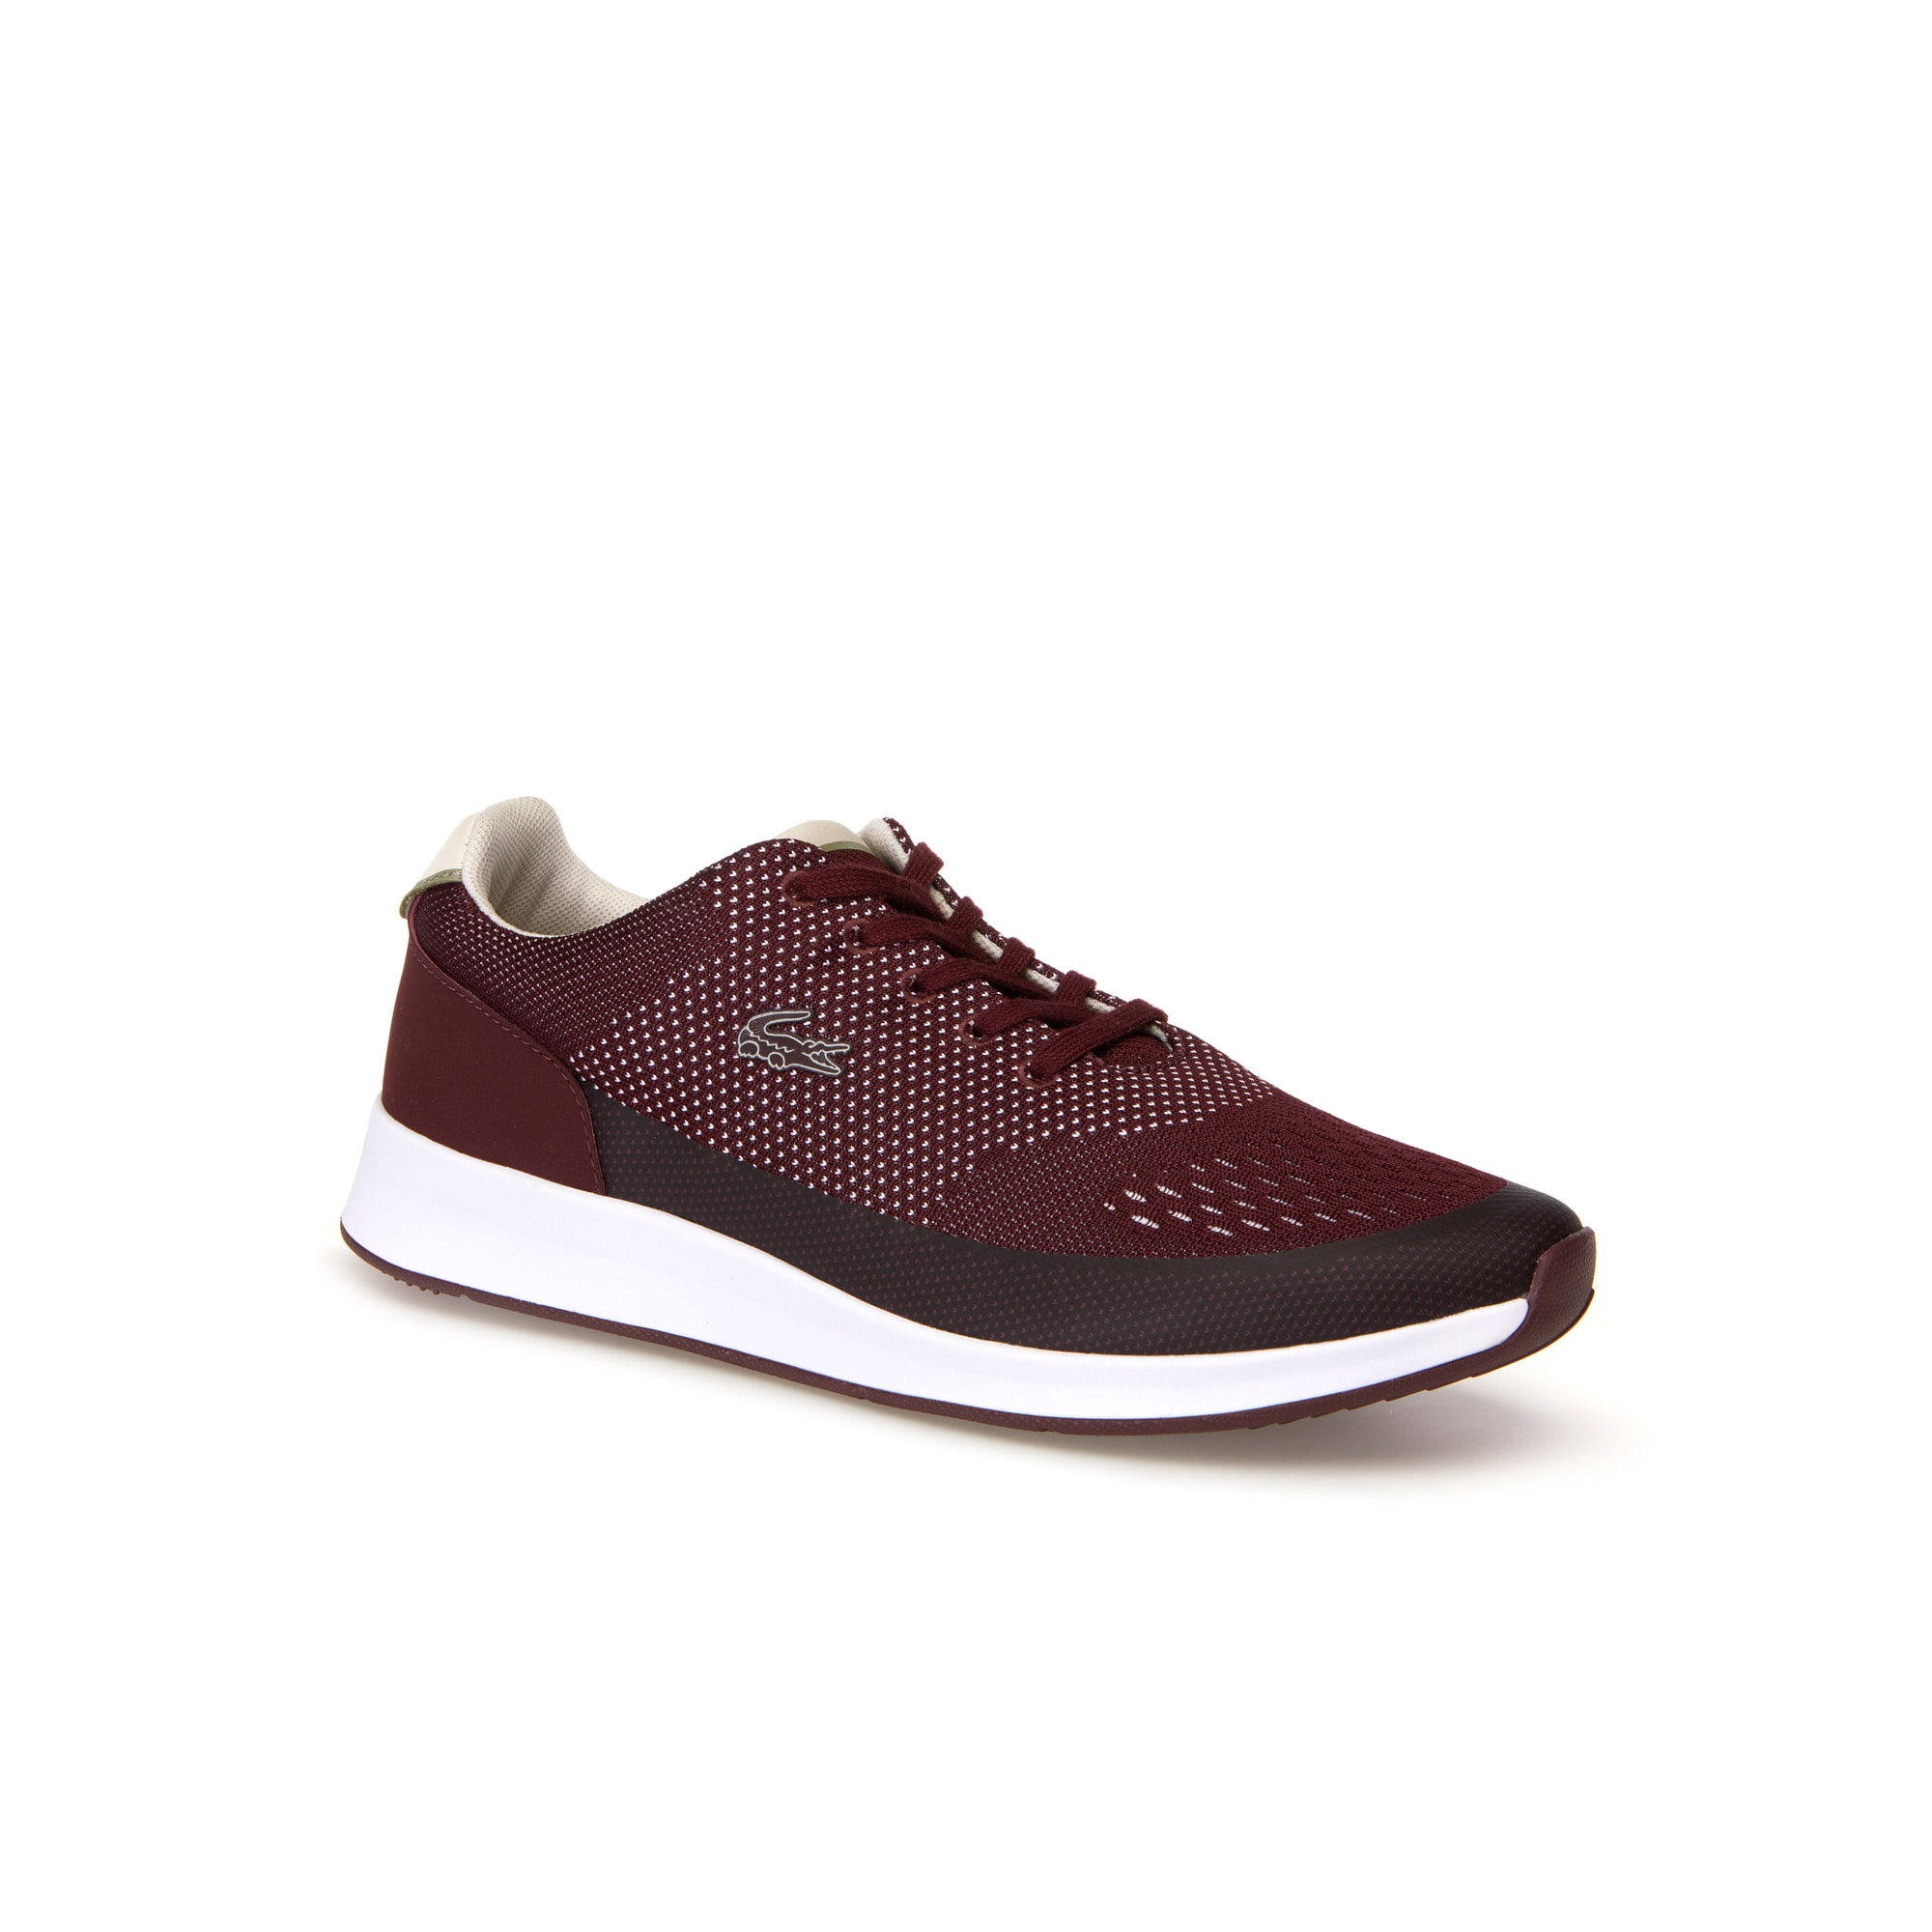 Women's Chaumont Jacquard Knit Trainers